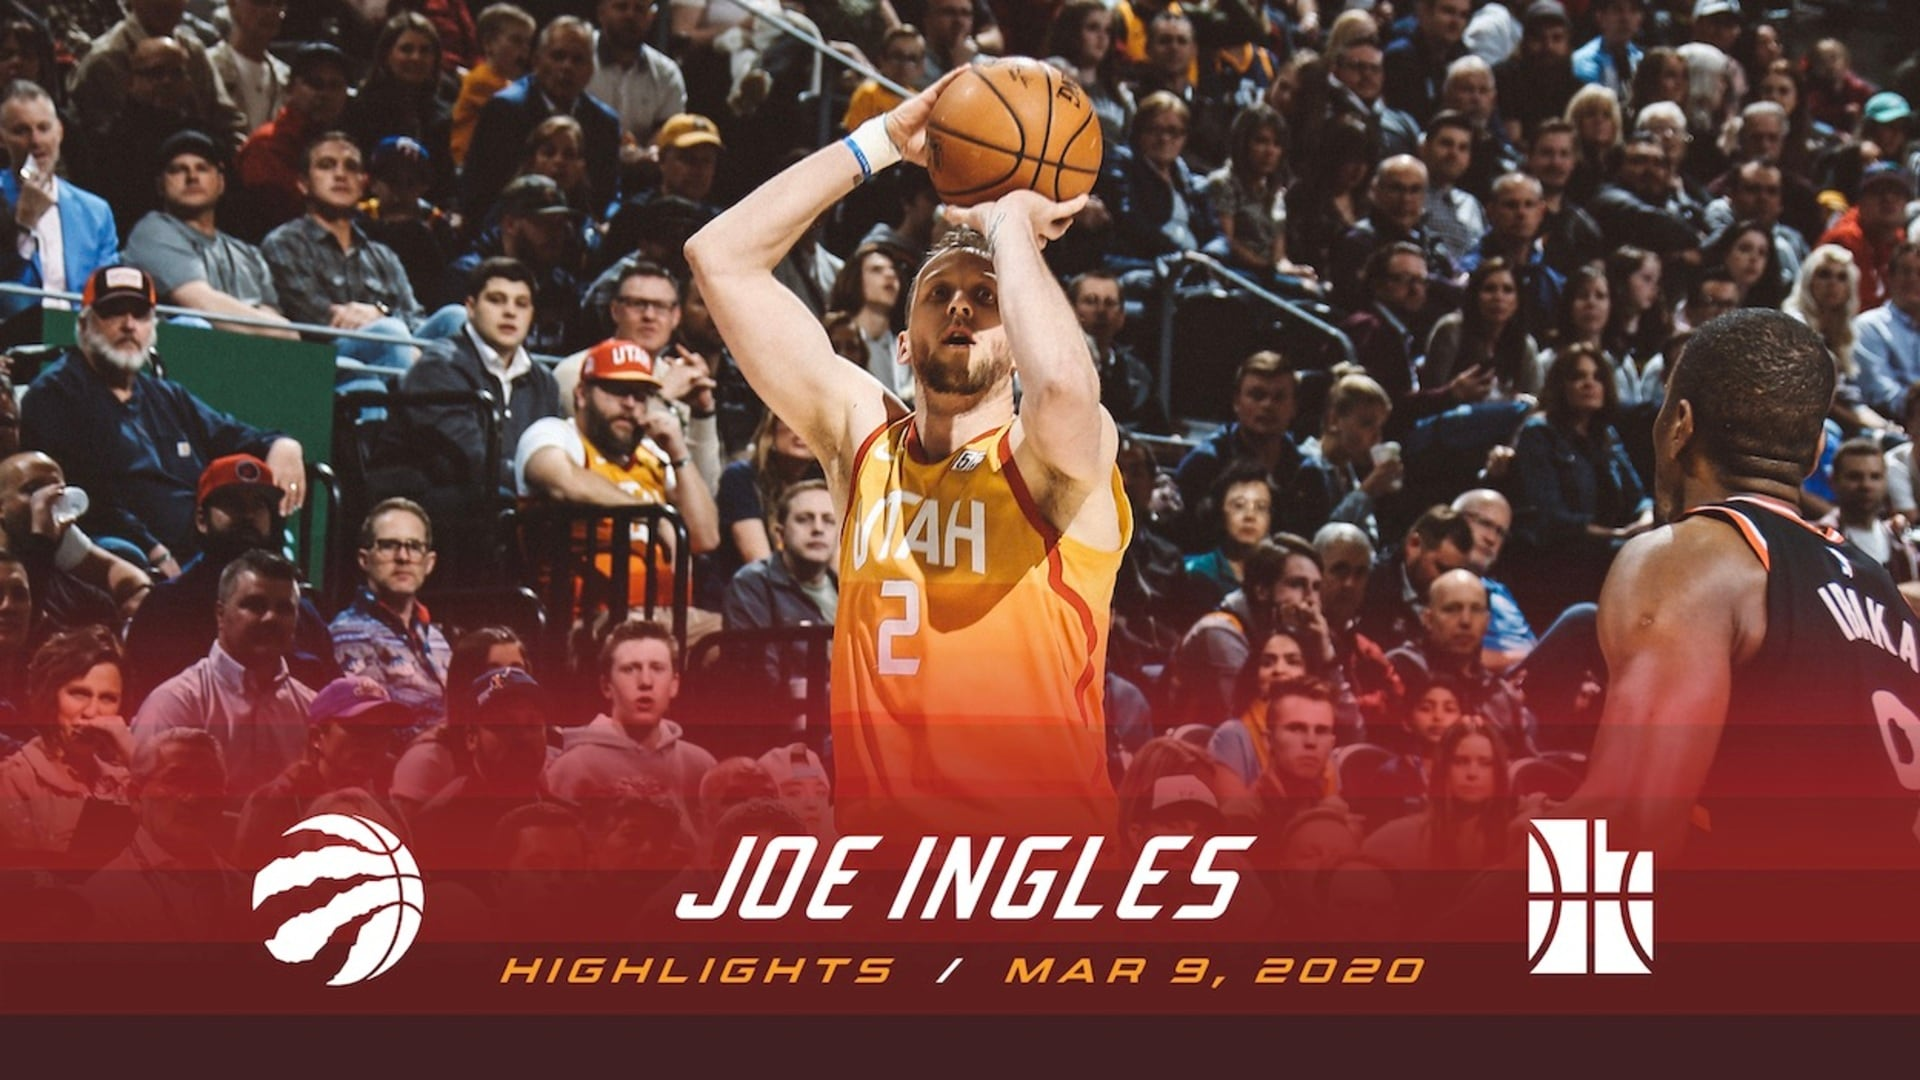 Highlights: Joe Ingles — 20 points, 6 assists